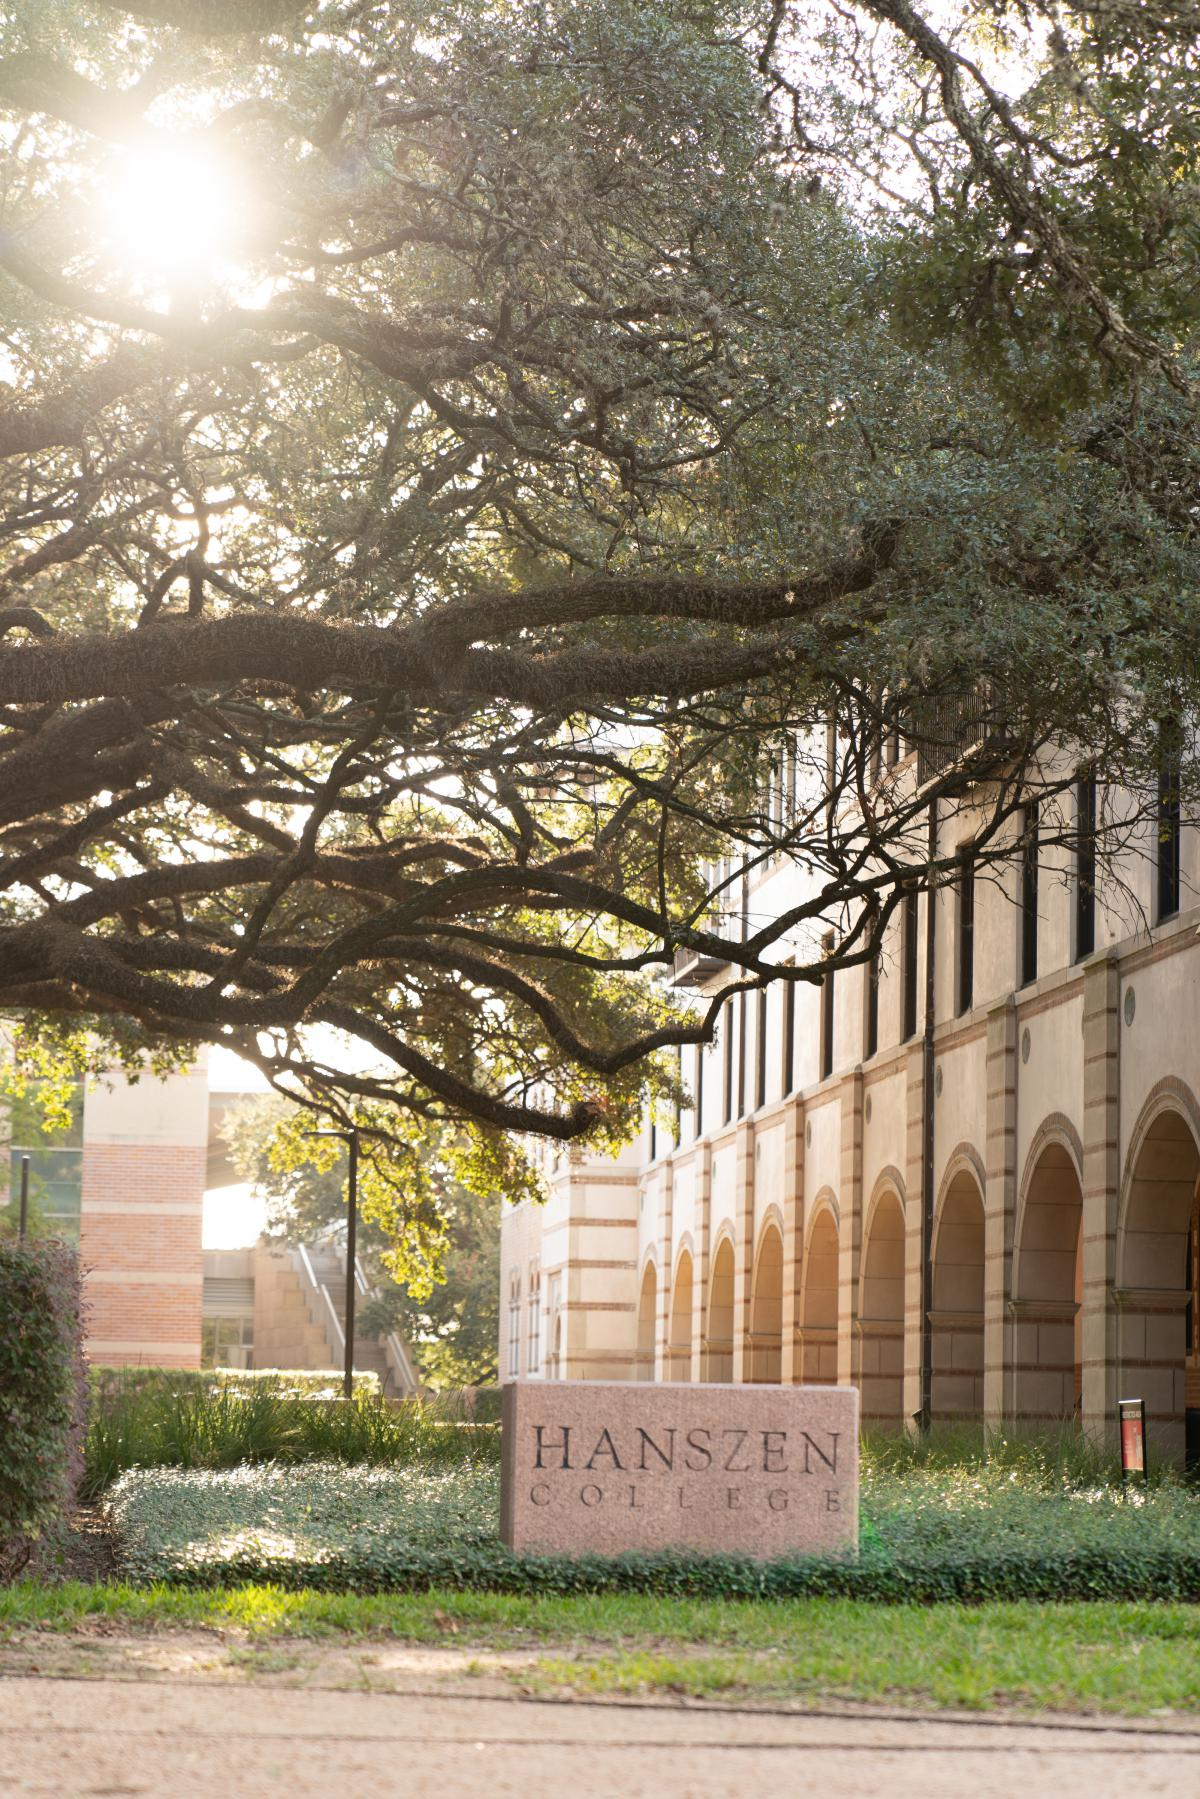 Outside picture of Hanszen College showing the college sign.